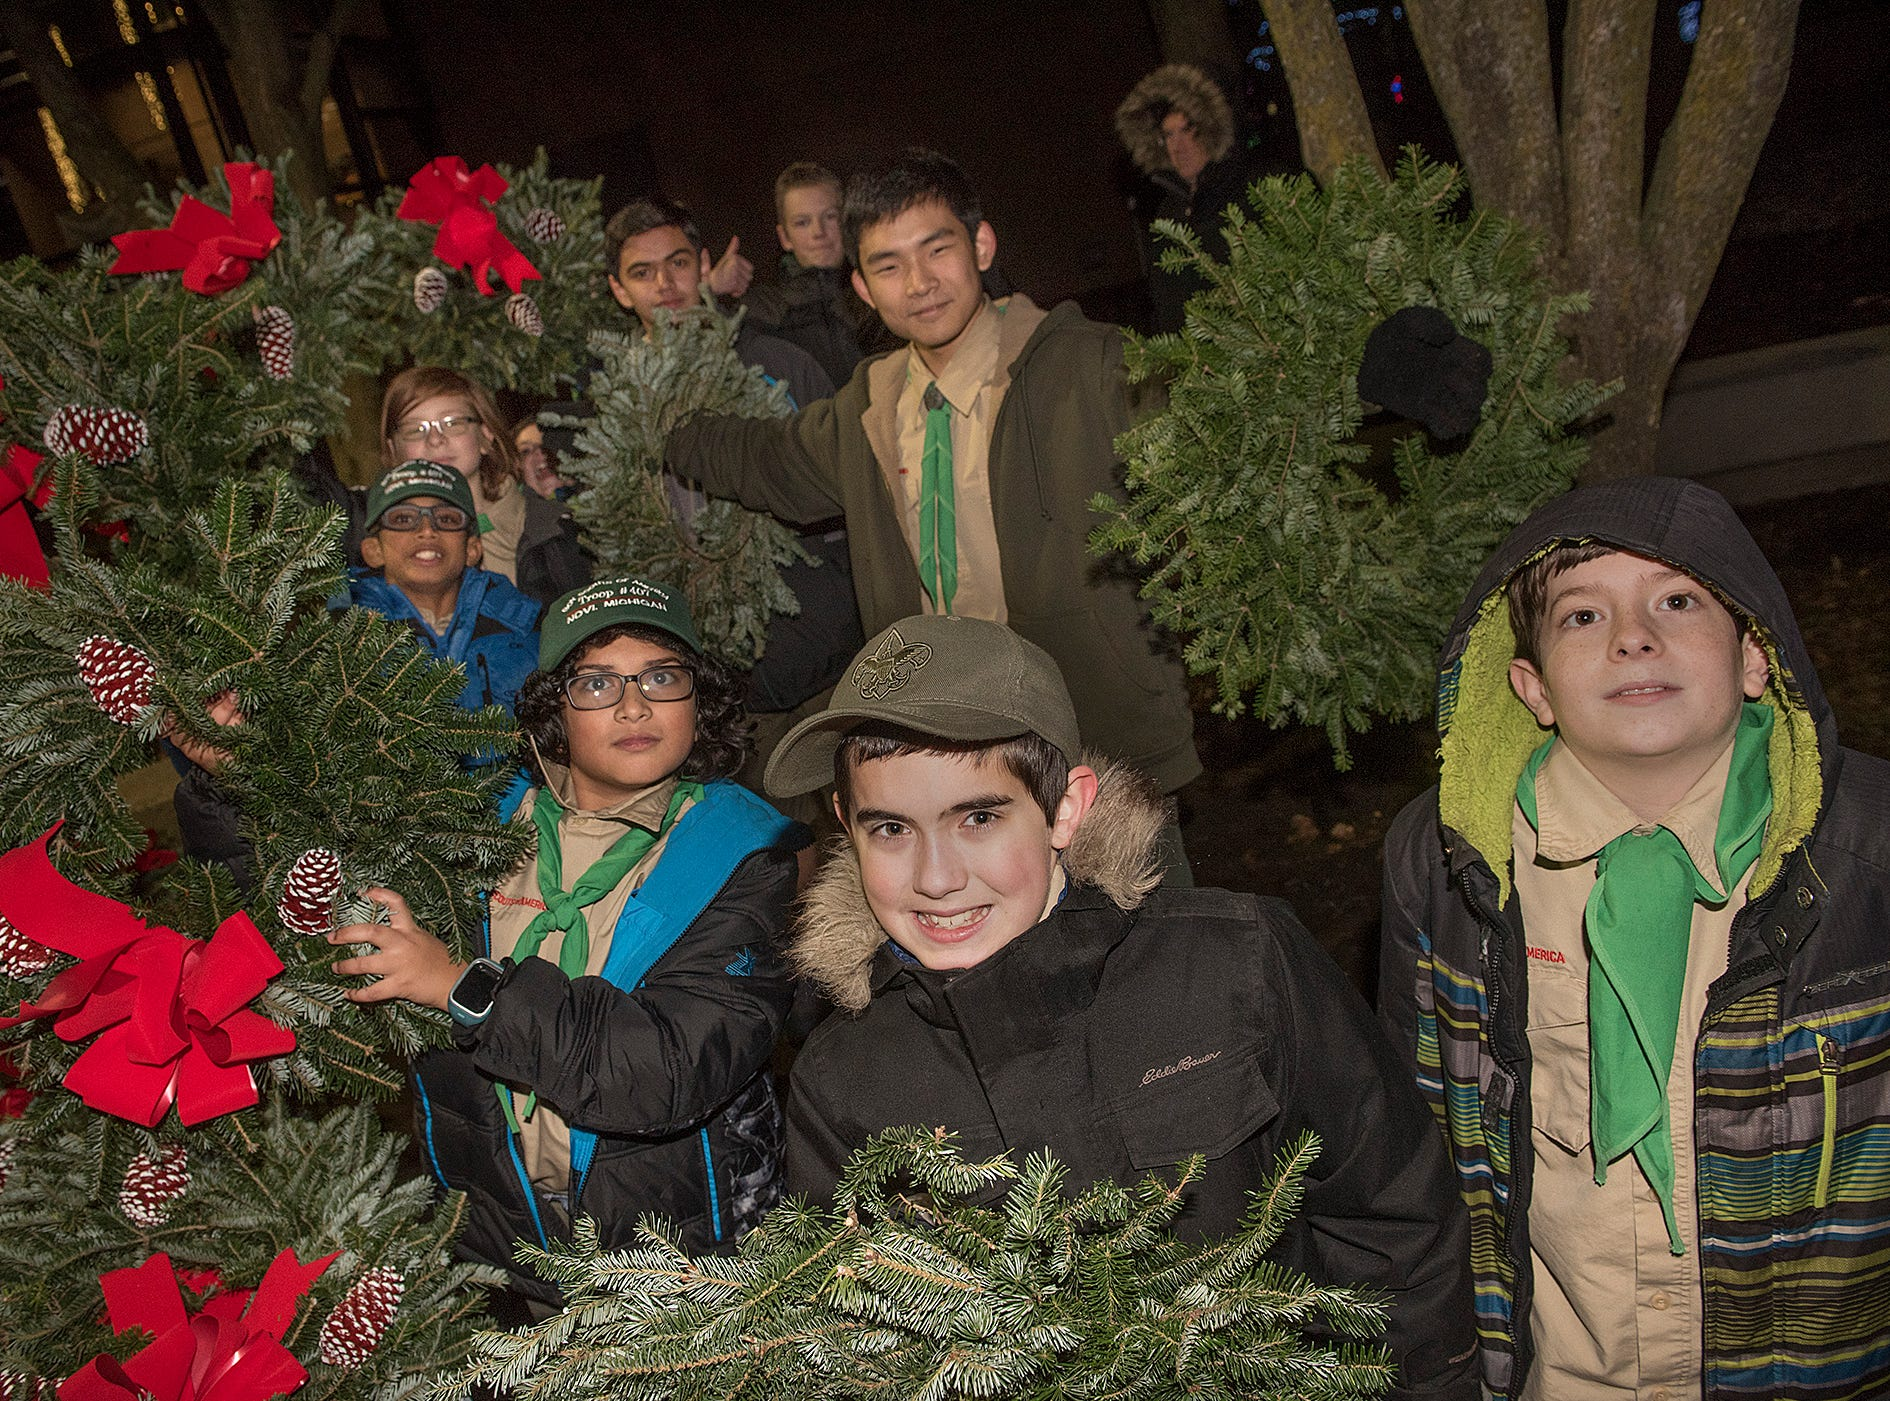 The guys from Novi Boy Scout Troop 407 are selling wreaths and poinsettias.